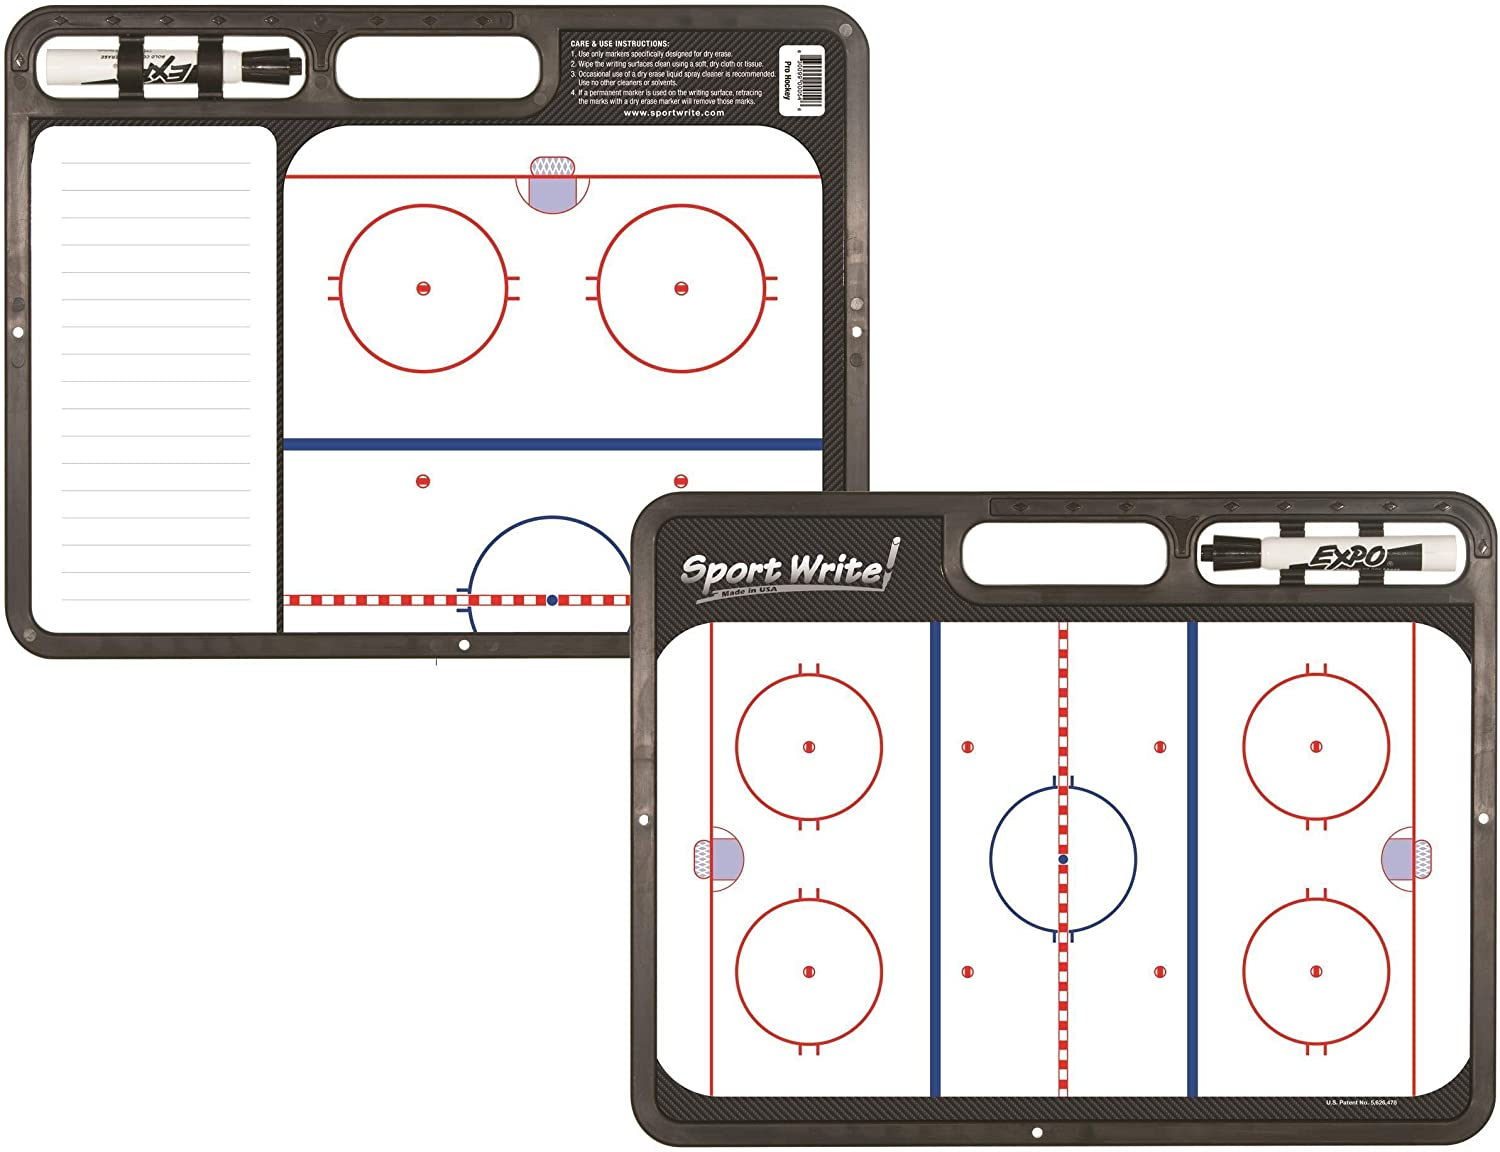 B003KJA9I6 Sport Write Pro Ice Hockey Coaches Board 81q4gob5erL